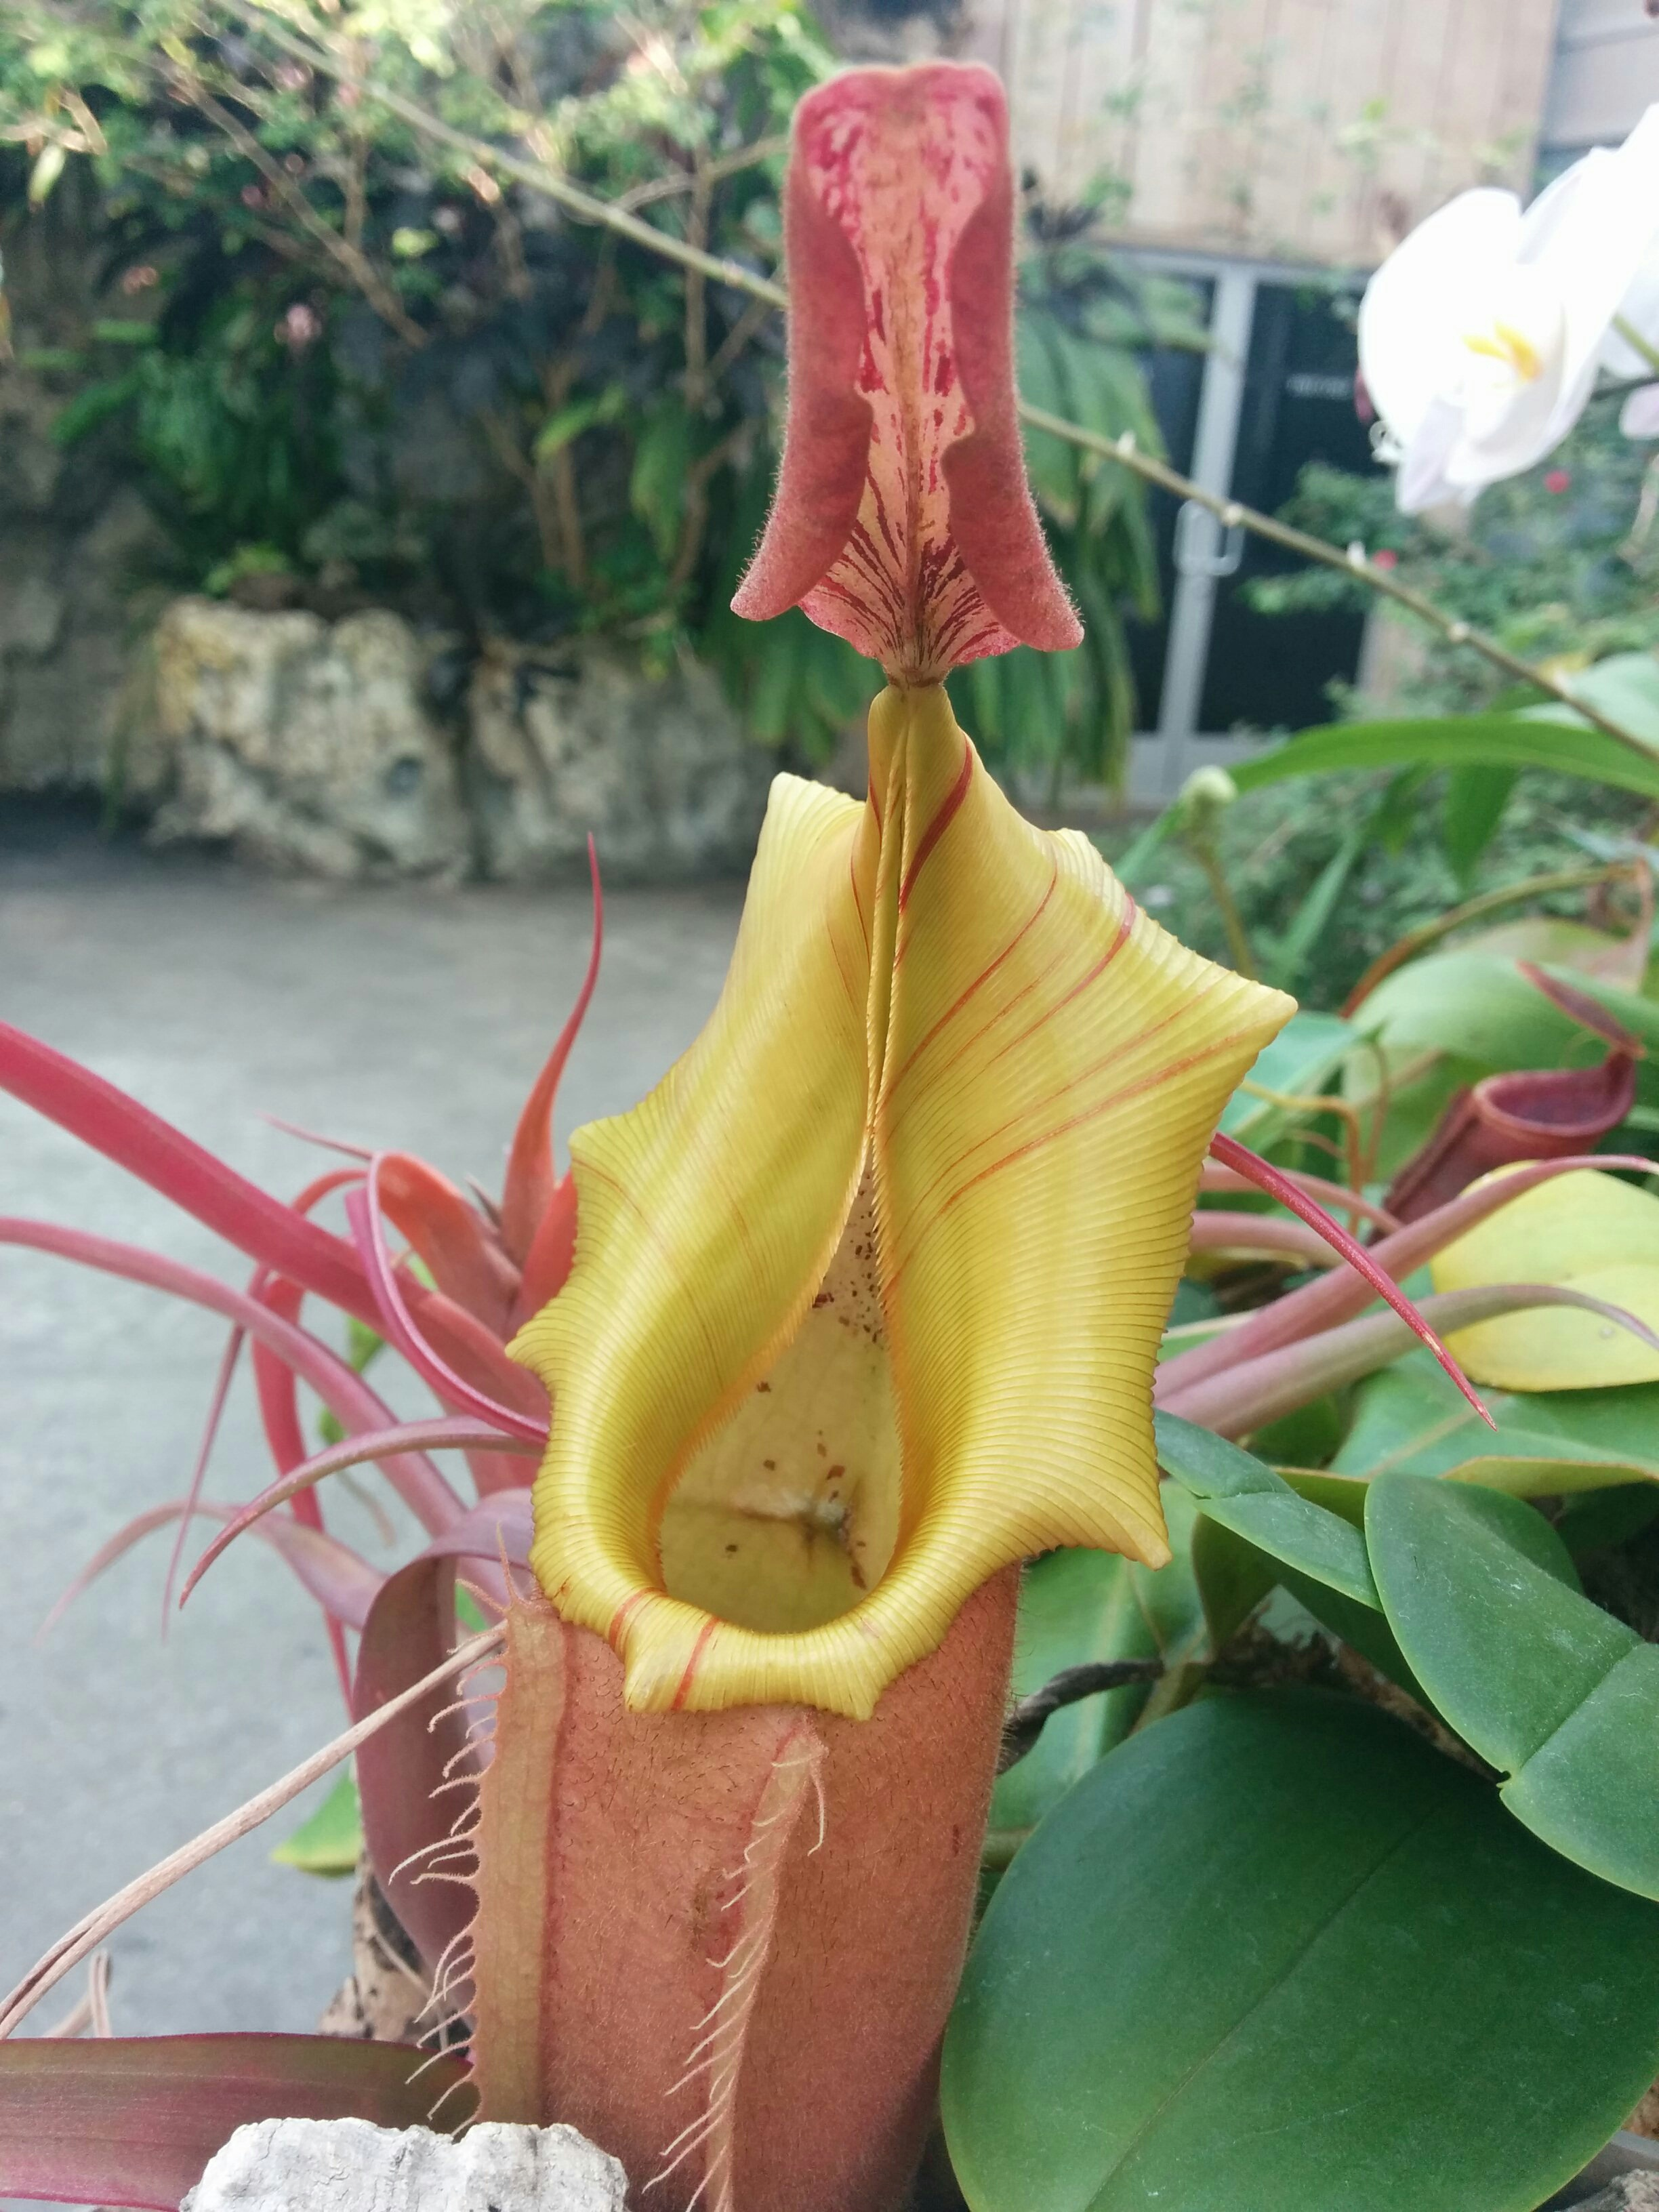 Pitcher plant in botanic garden